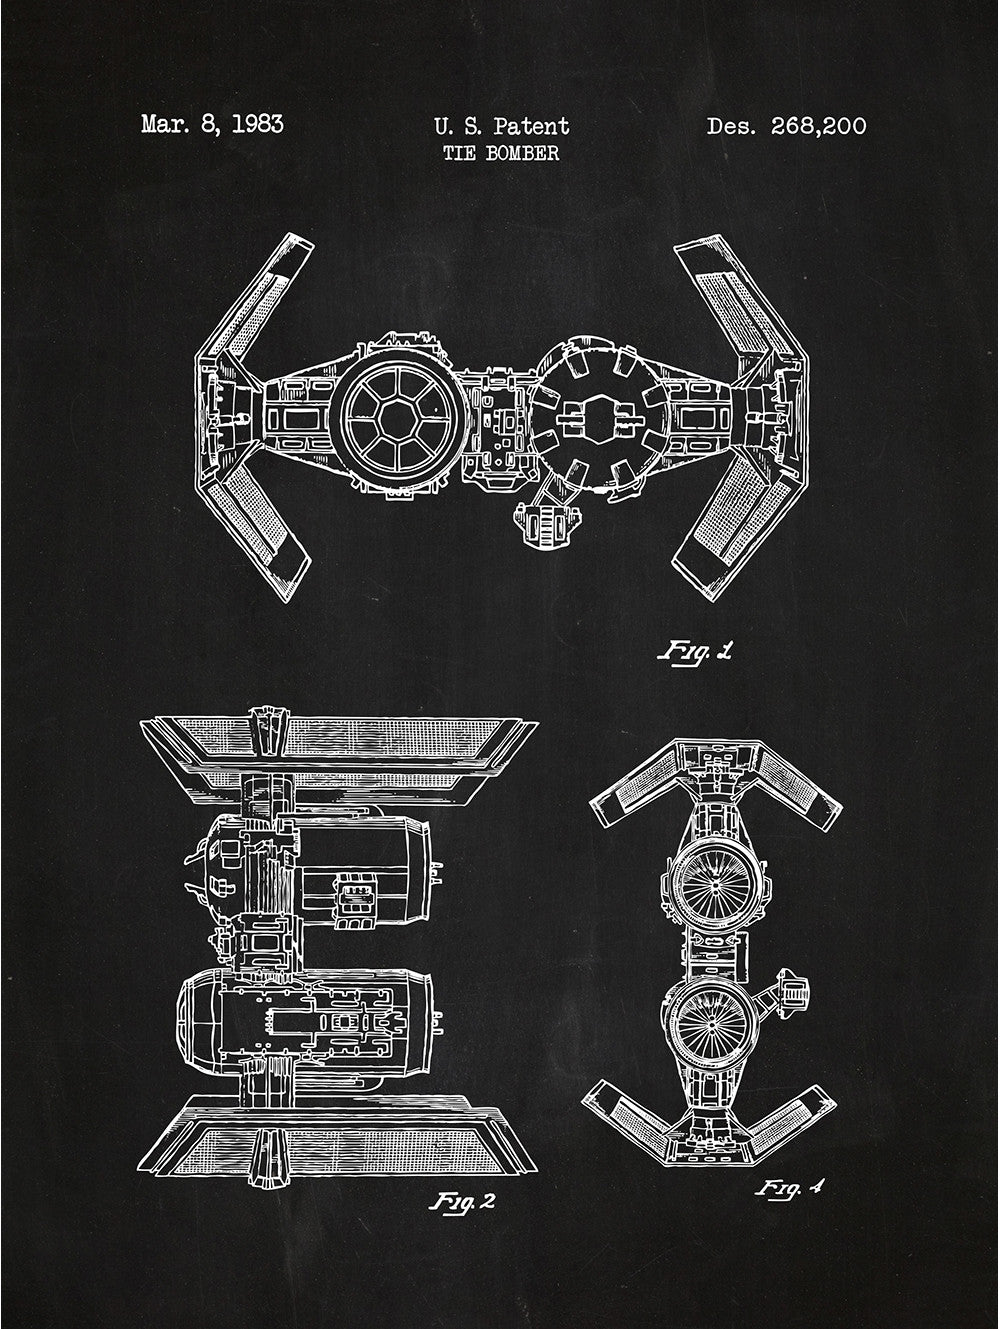 (U19) - Star Wars Vehicles: Tie Bomber